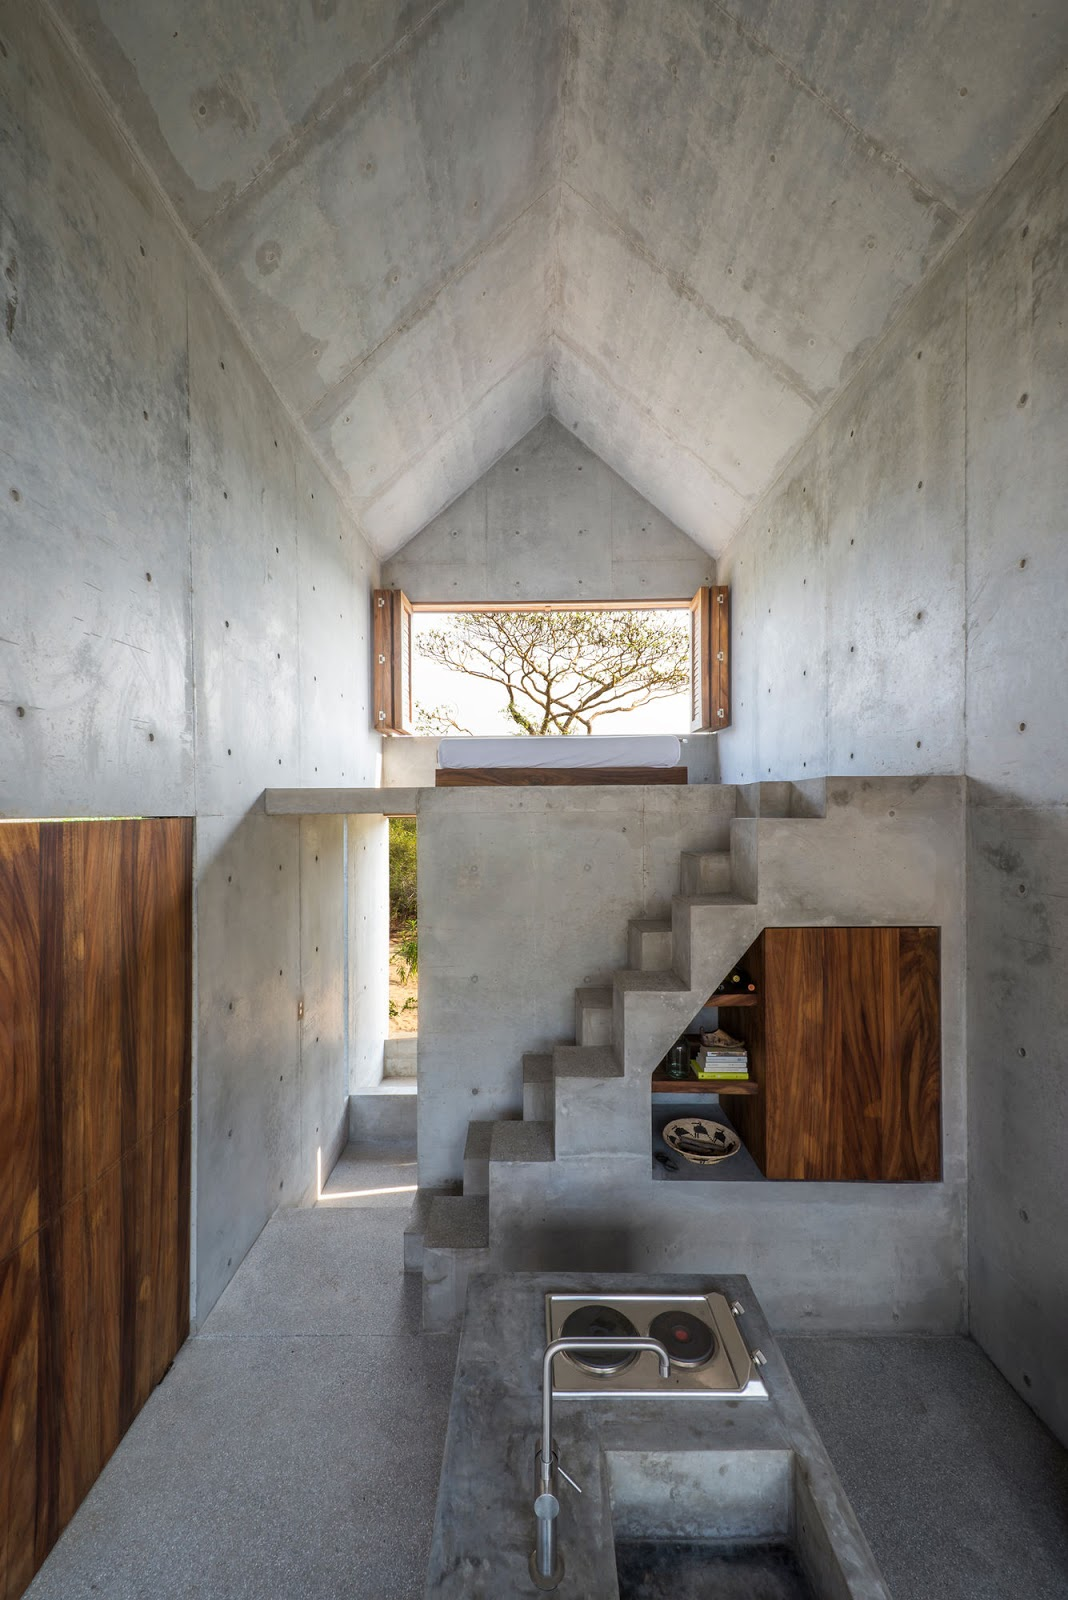 Casa Tiny is a concrete tiny house in Mexico to rent nightly